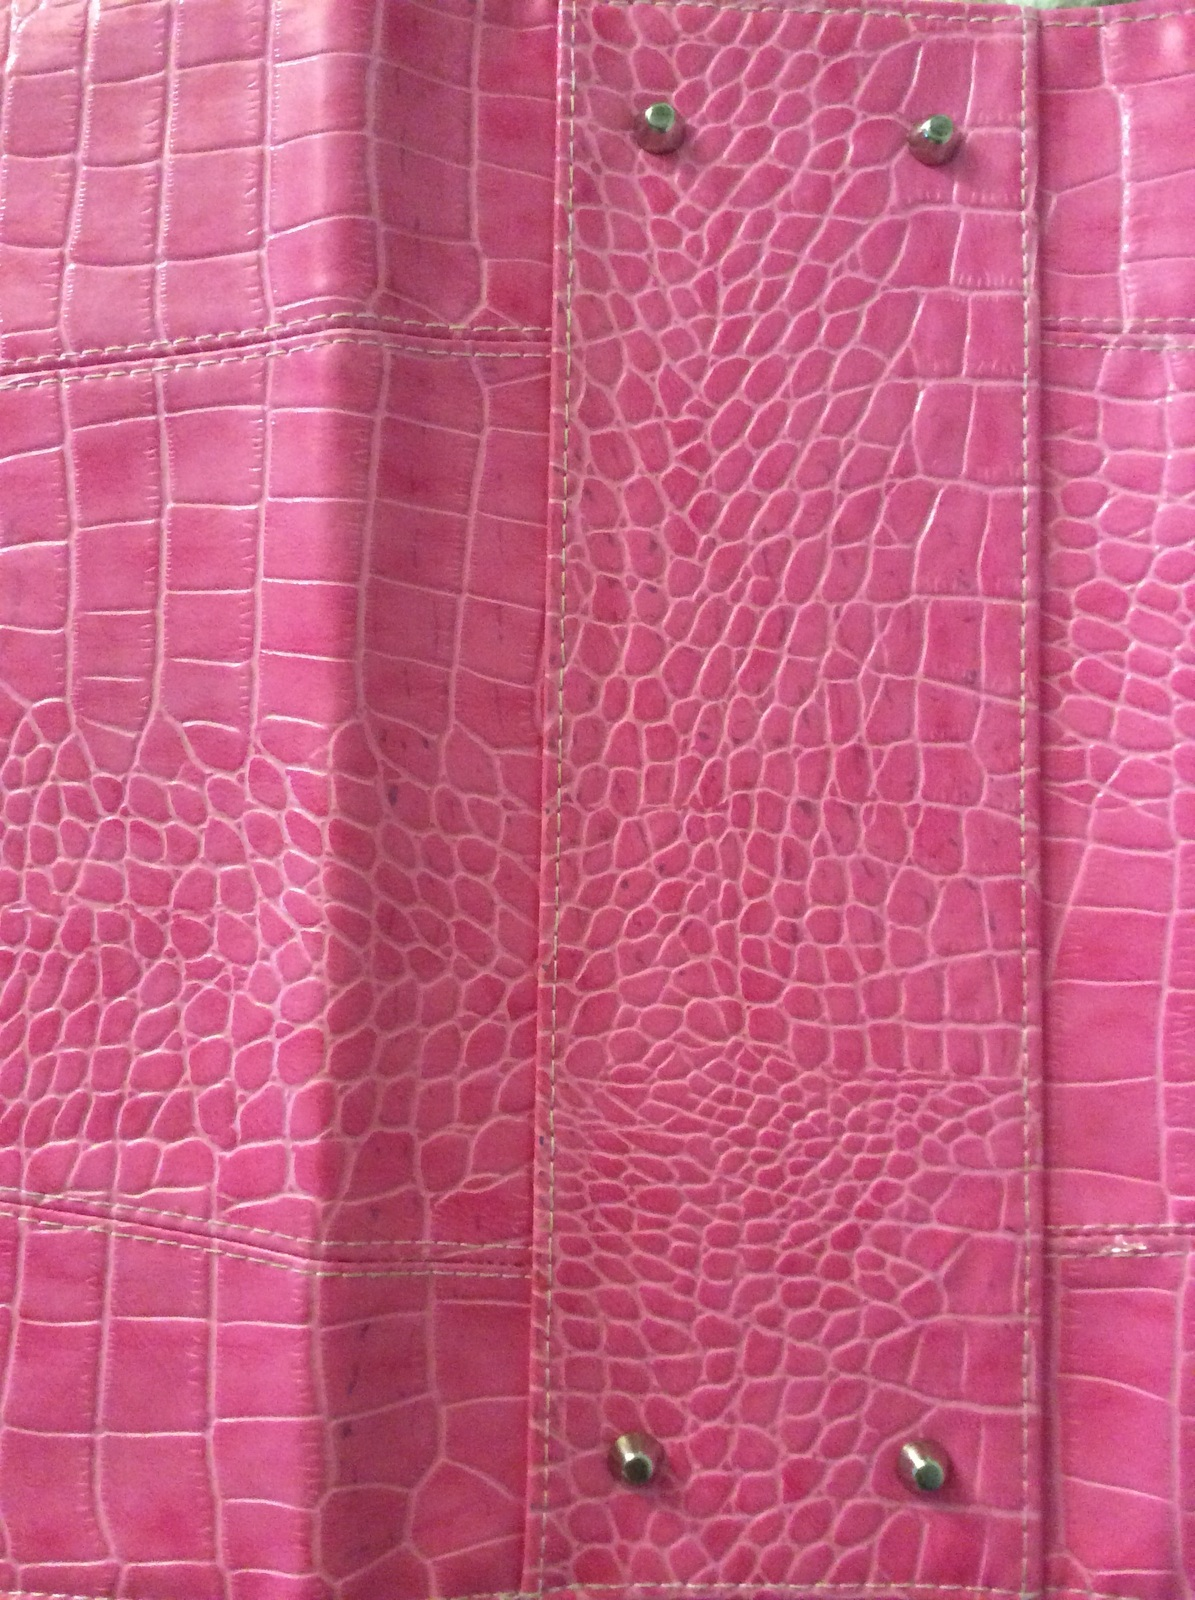 Miche Retired Classic Shell CORI in Pink needs TLC